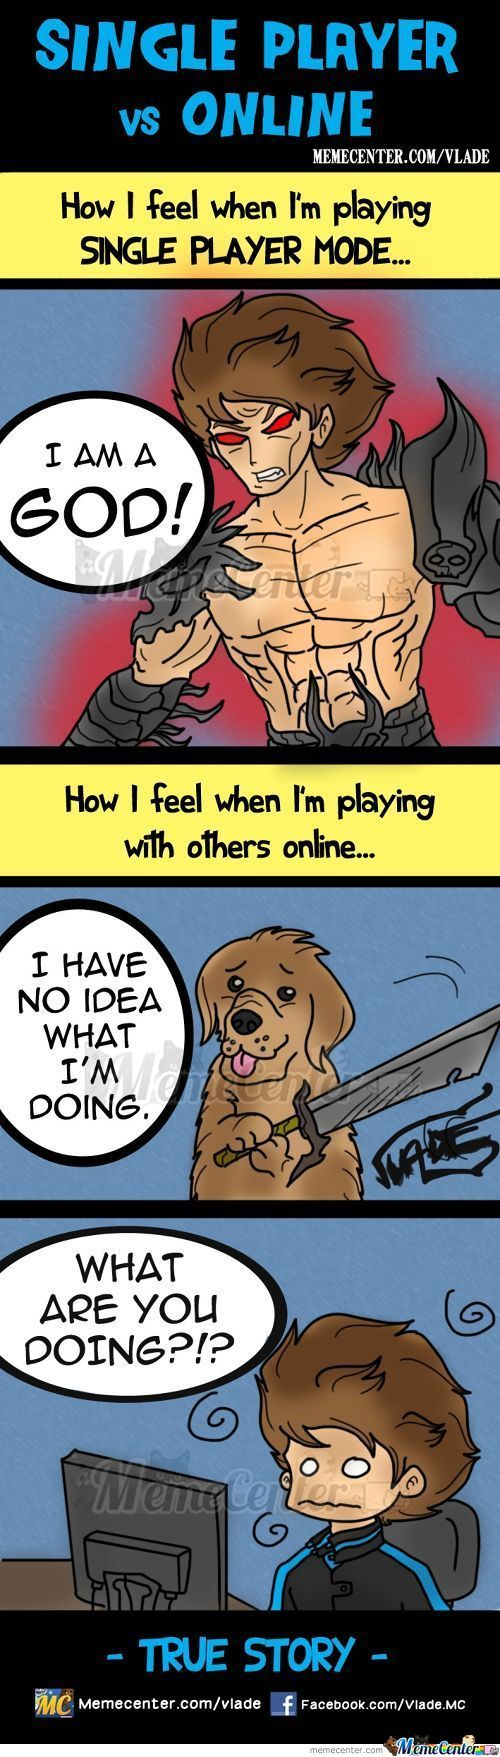 Single Player Vs Online